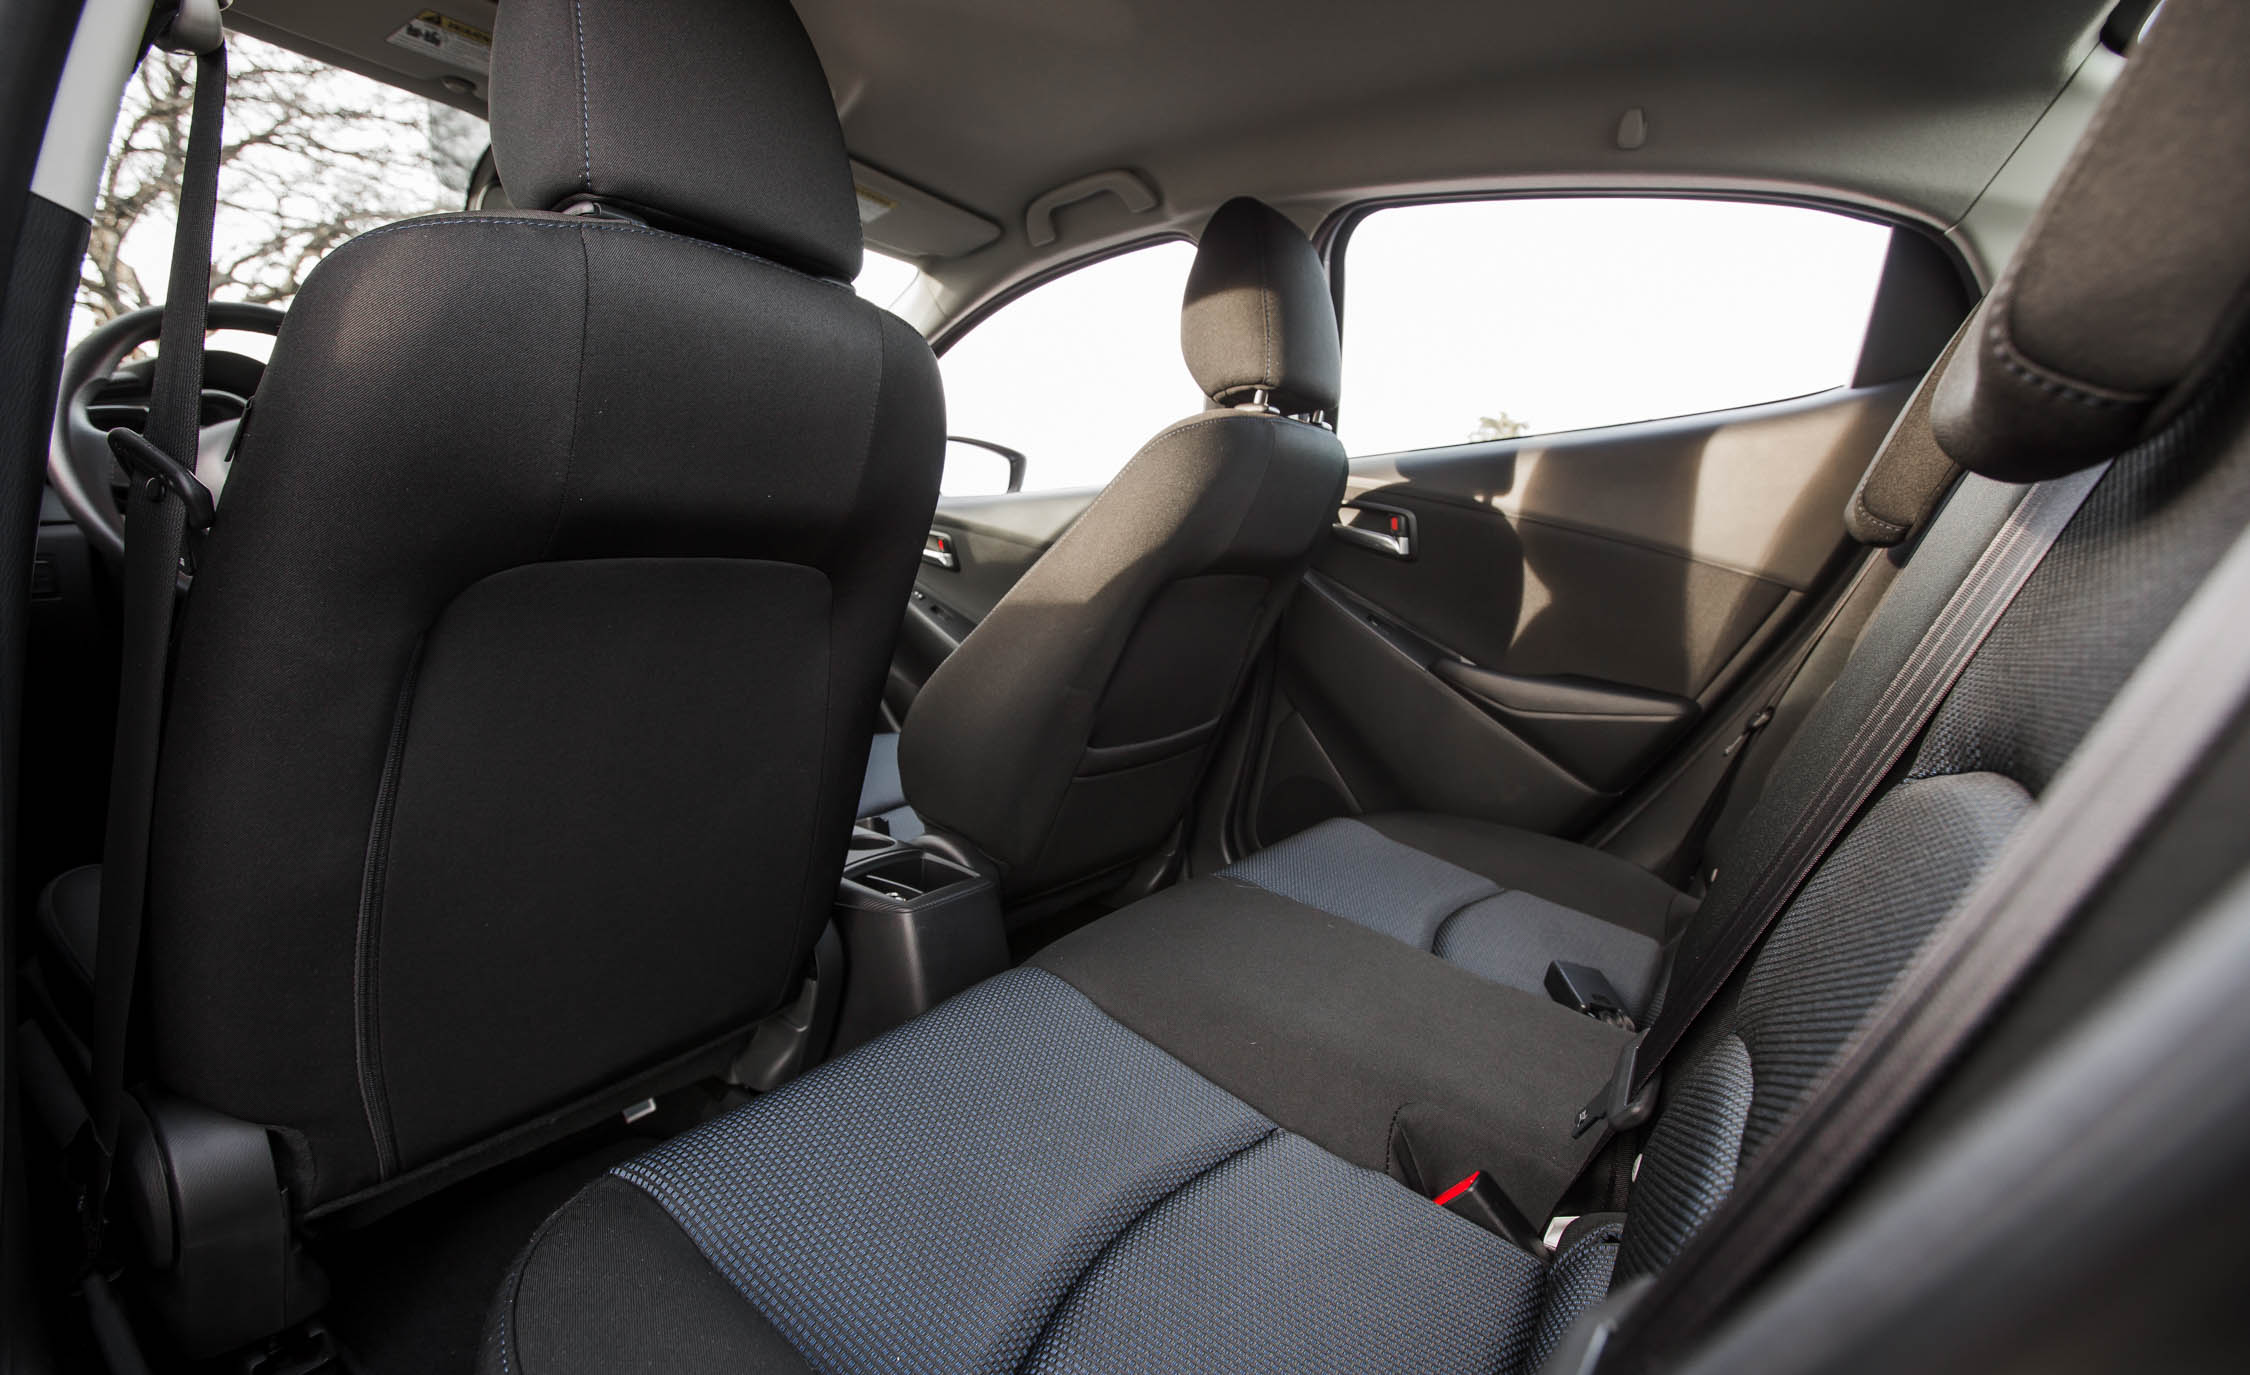 2016 Scion iA Interior Rear